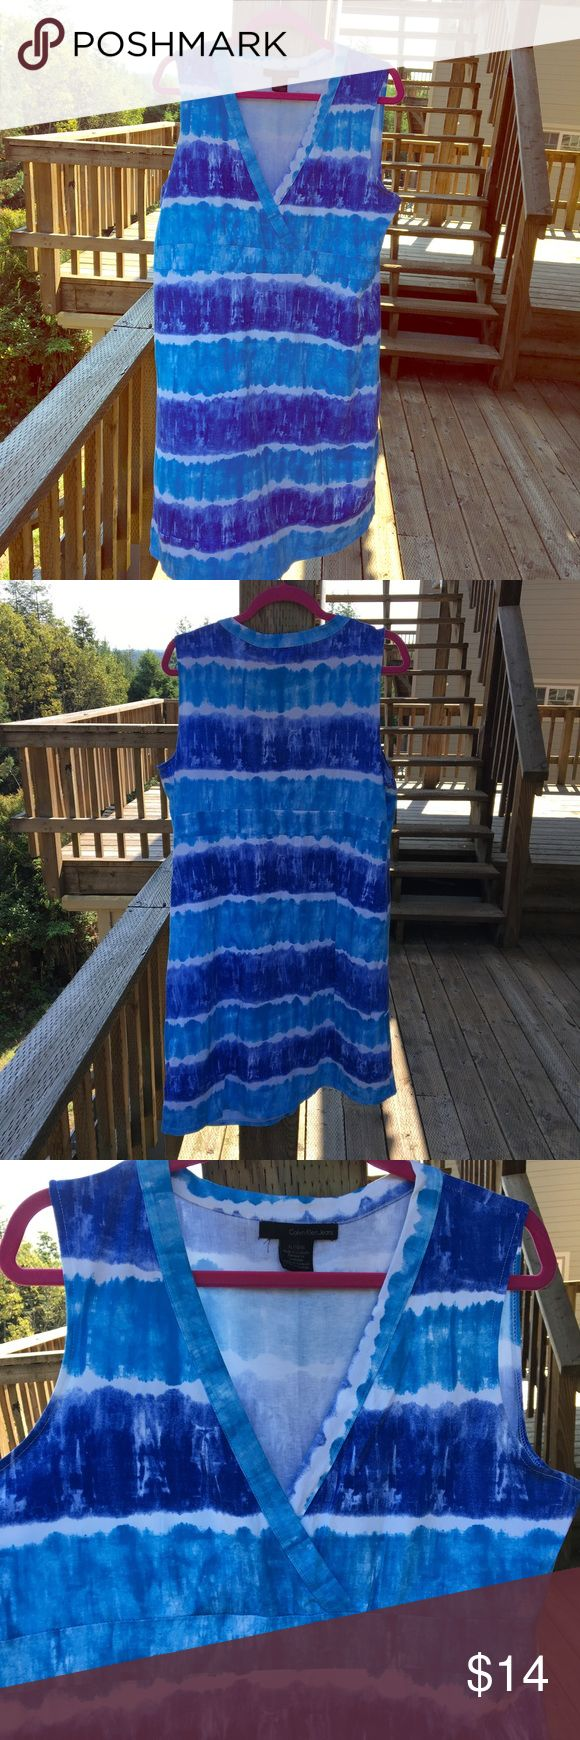 "Tie-Dyed Crisscross Front Dress, XL Simple tie-dyed pattern that really brings out blue eyes, ladies! Shorter on me (I'm 5'11"") so I wore it like a tunic with capri leggings and sandals. Would fit at knee for 5'9"" and shorter. Easy care cotton and elastane. Calvin Klein Jeans Dresses Midi"